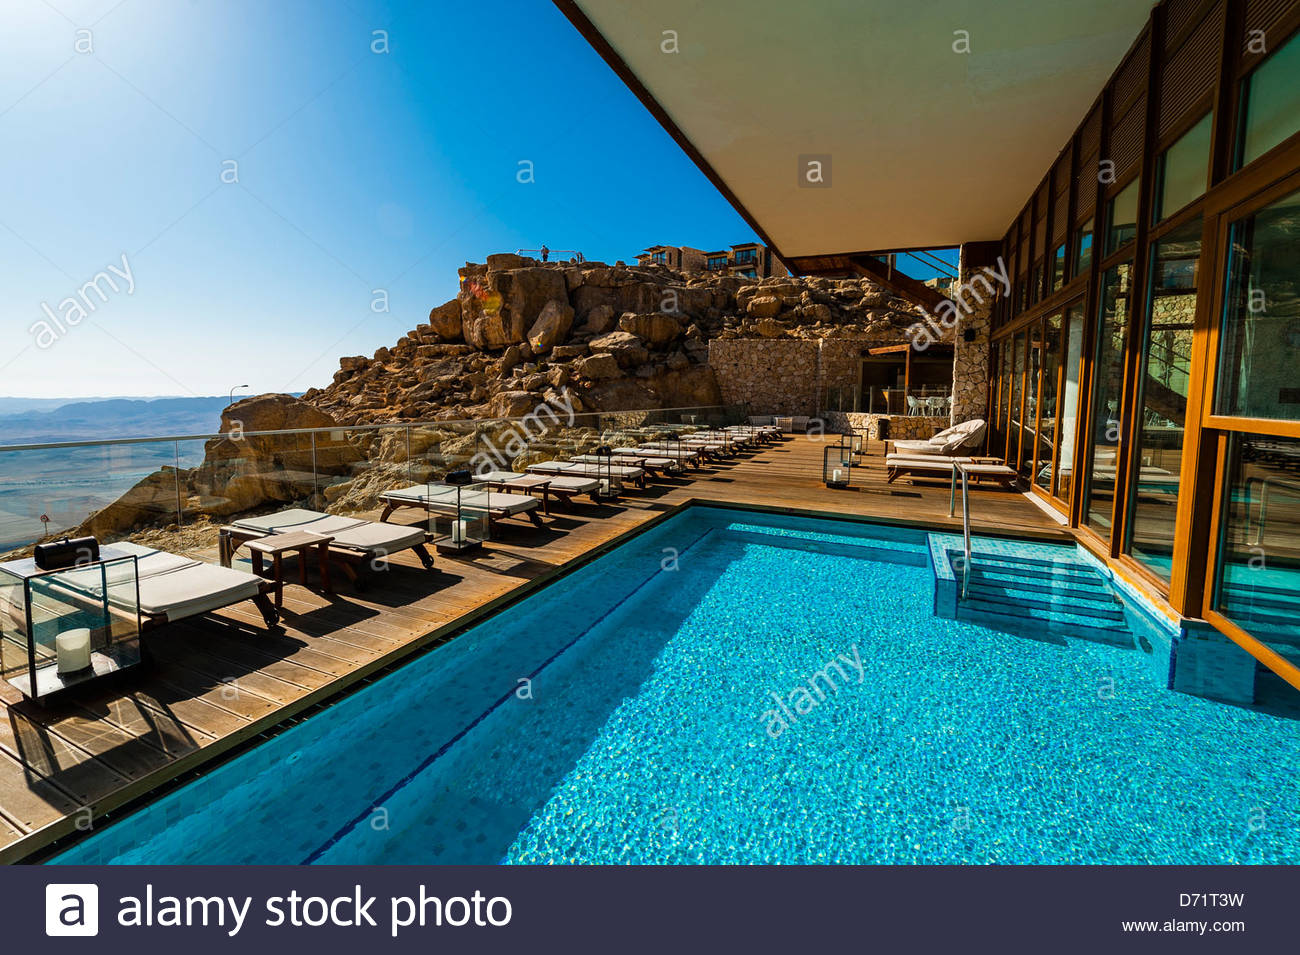 Swimming pool beresheet hotel mitzpe ramon negev desert israel stock photo royalty free for Hotels in jerusalem with swimming pool